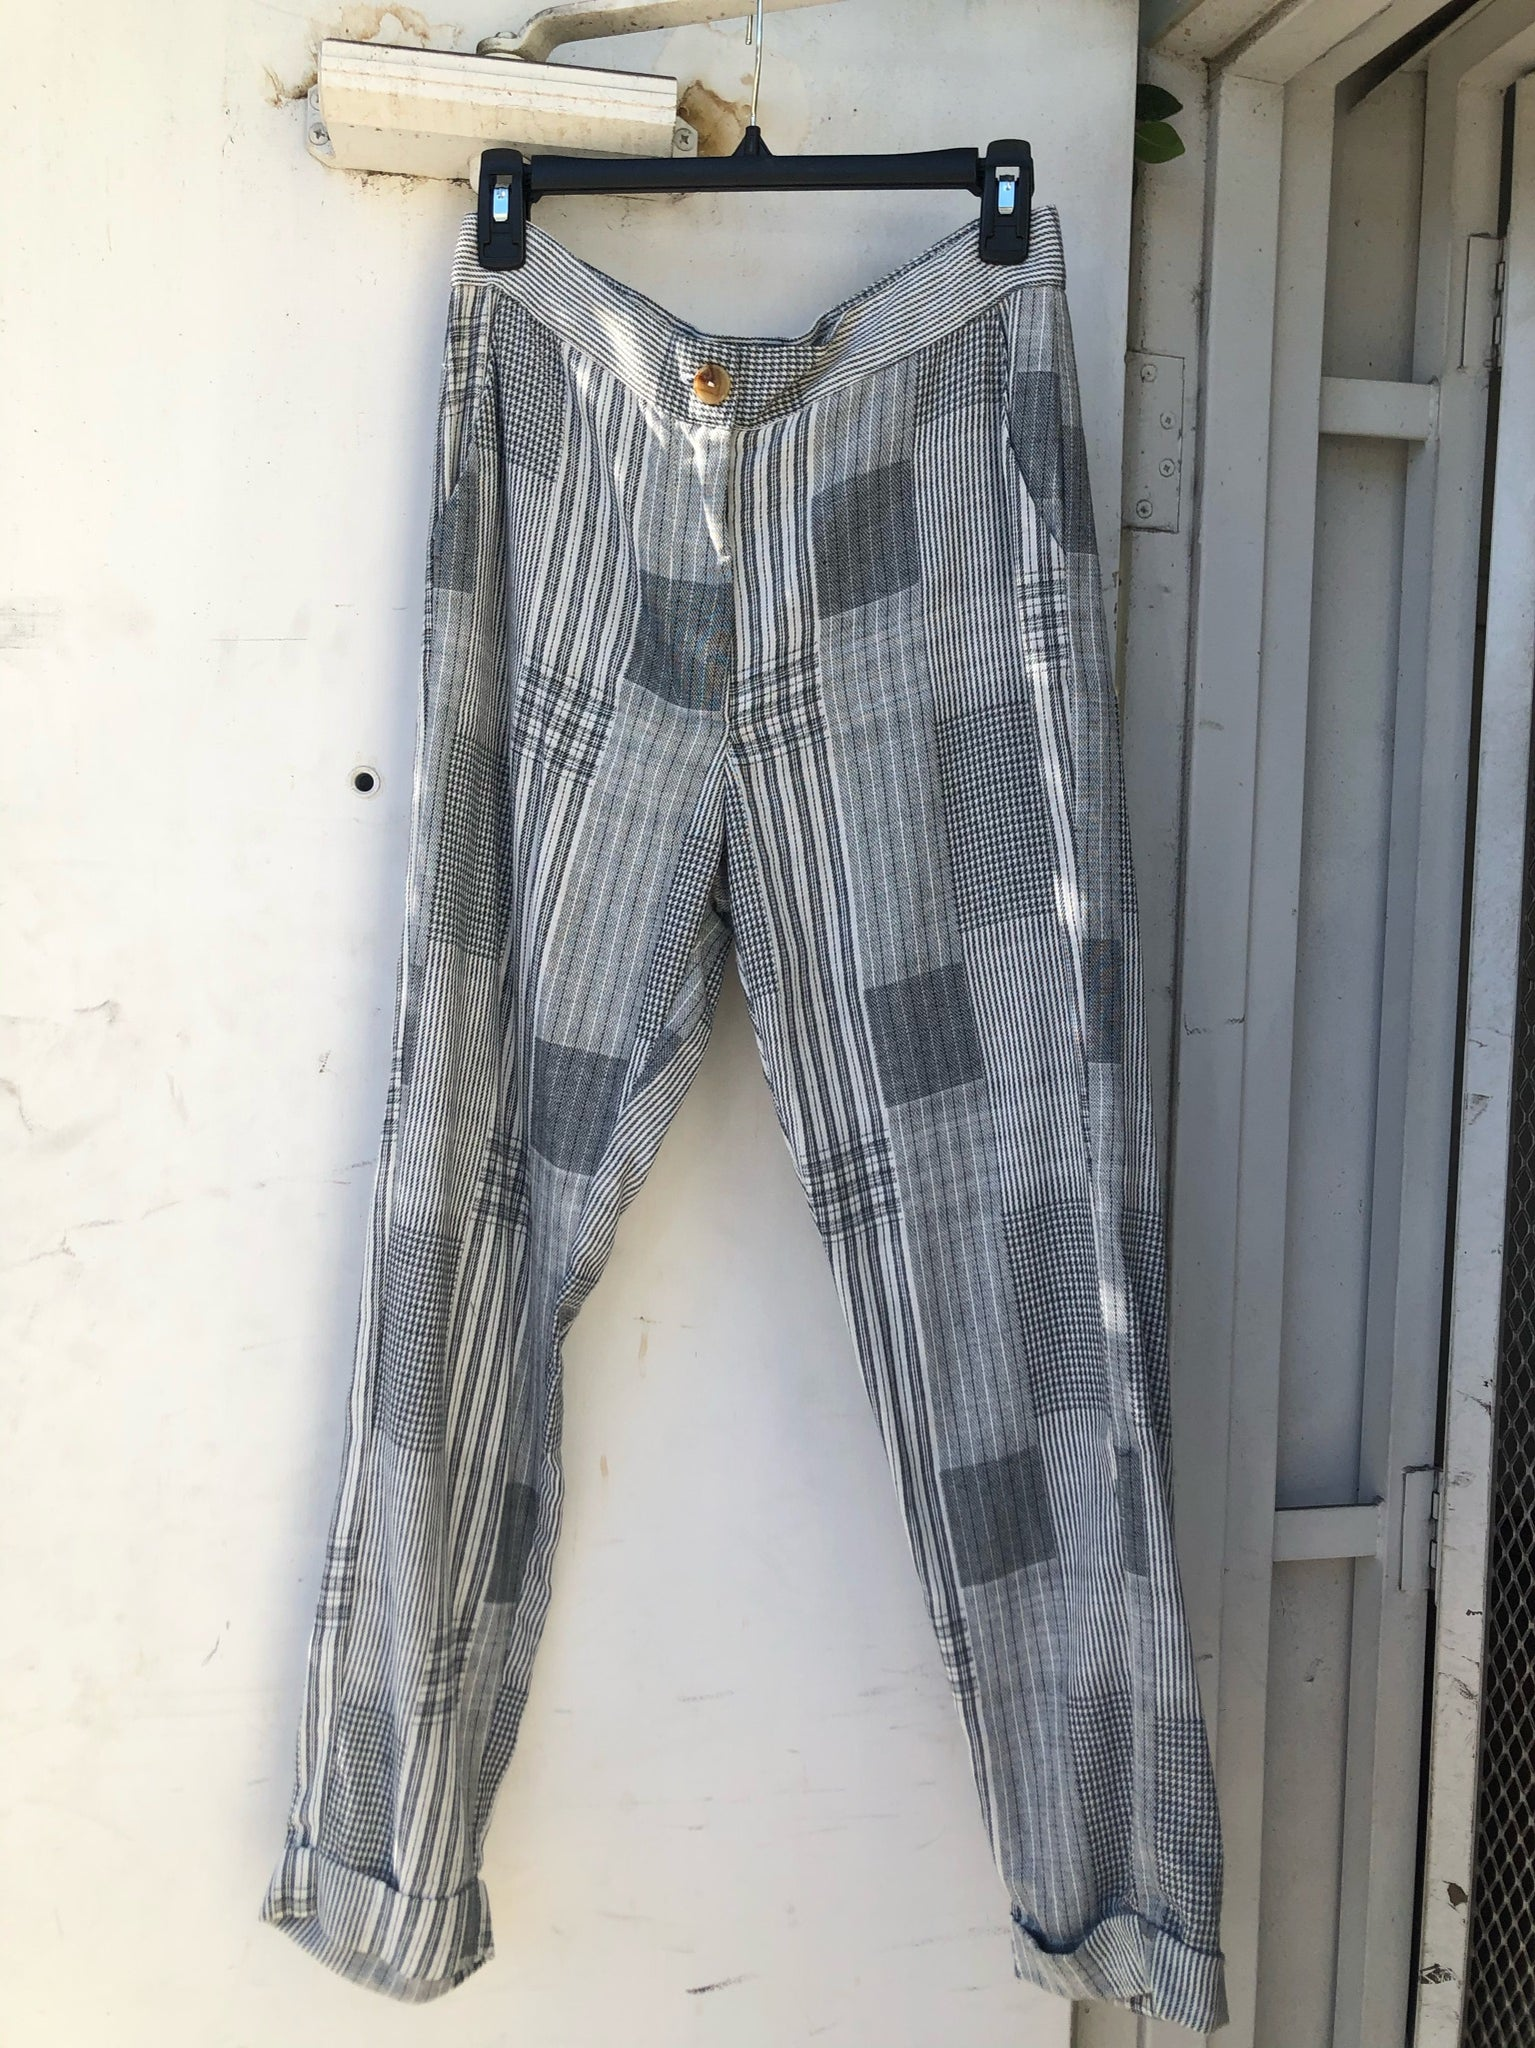 Dayandra Pant in Plaid - Size S